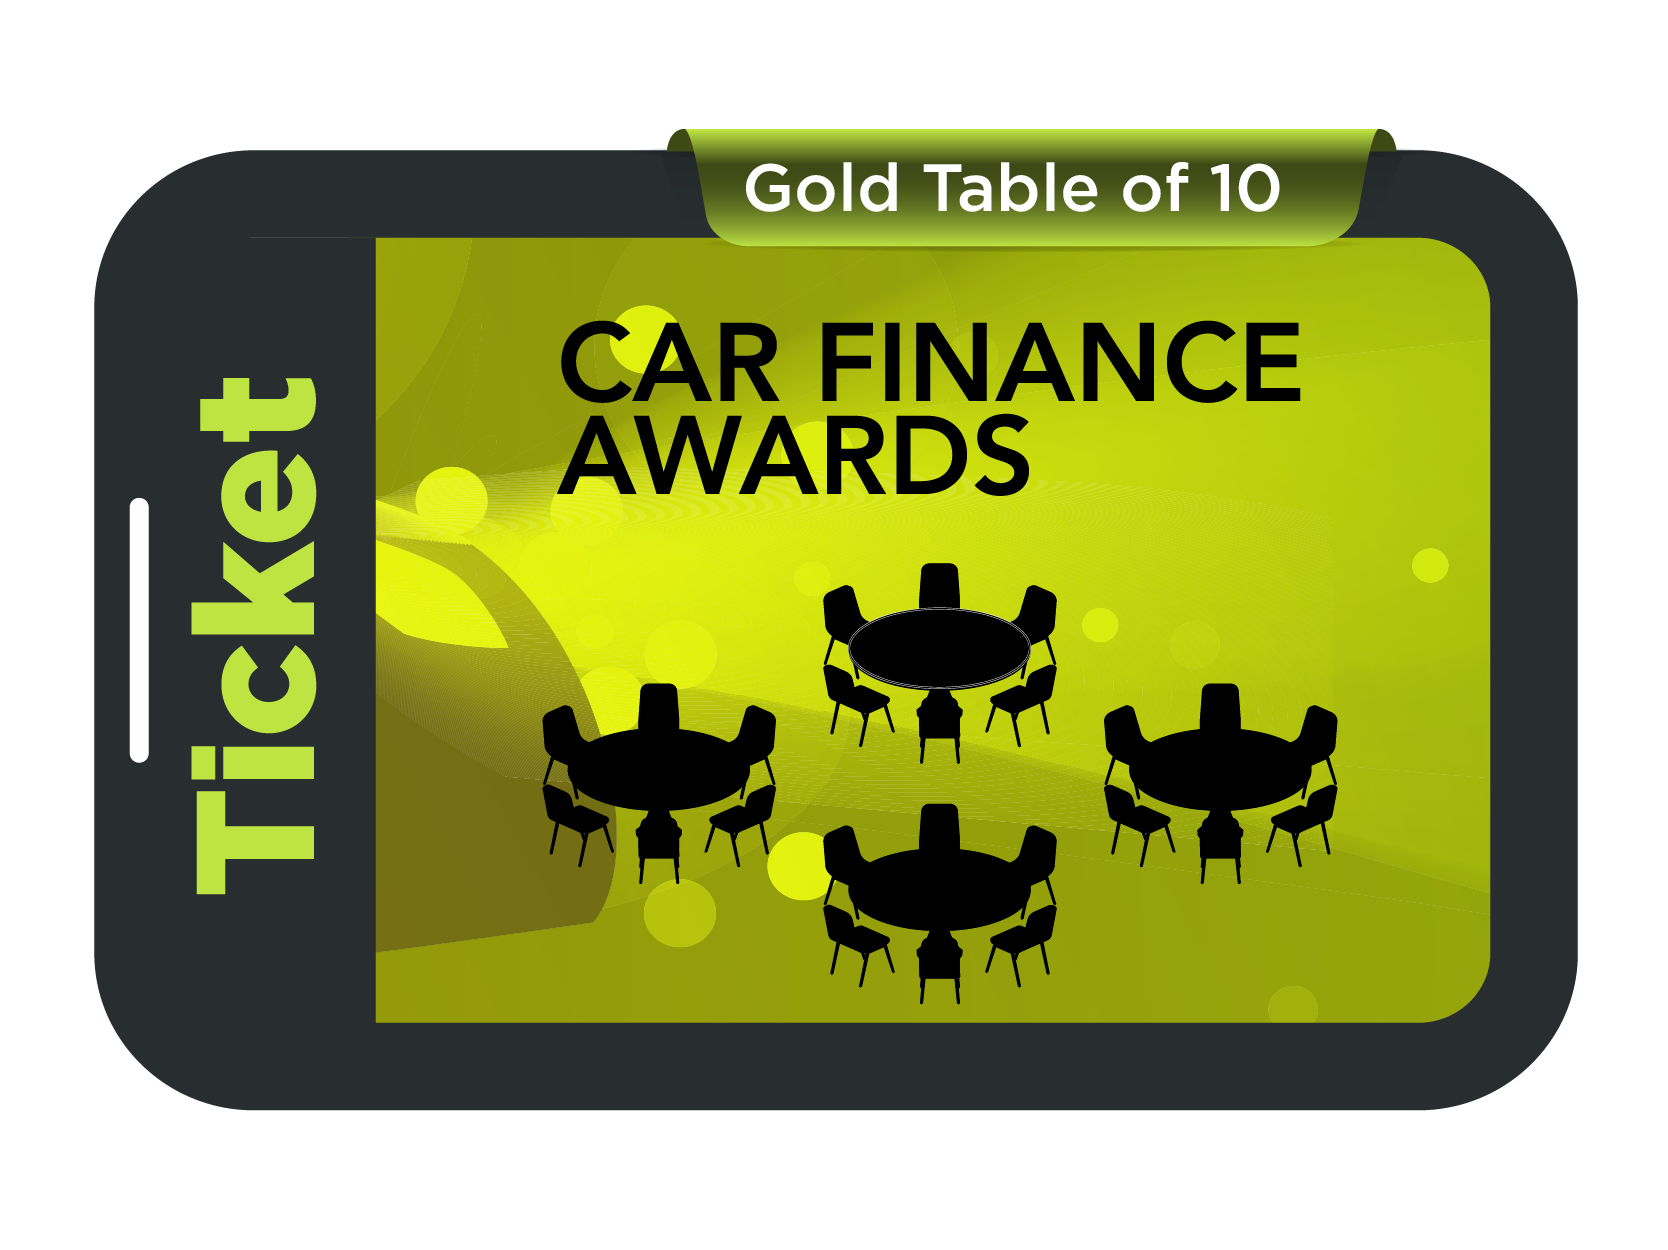 Gold Table of 10 - Car Finance Awards 2021